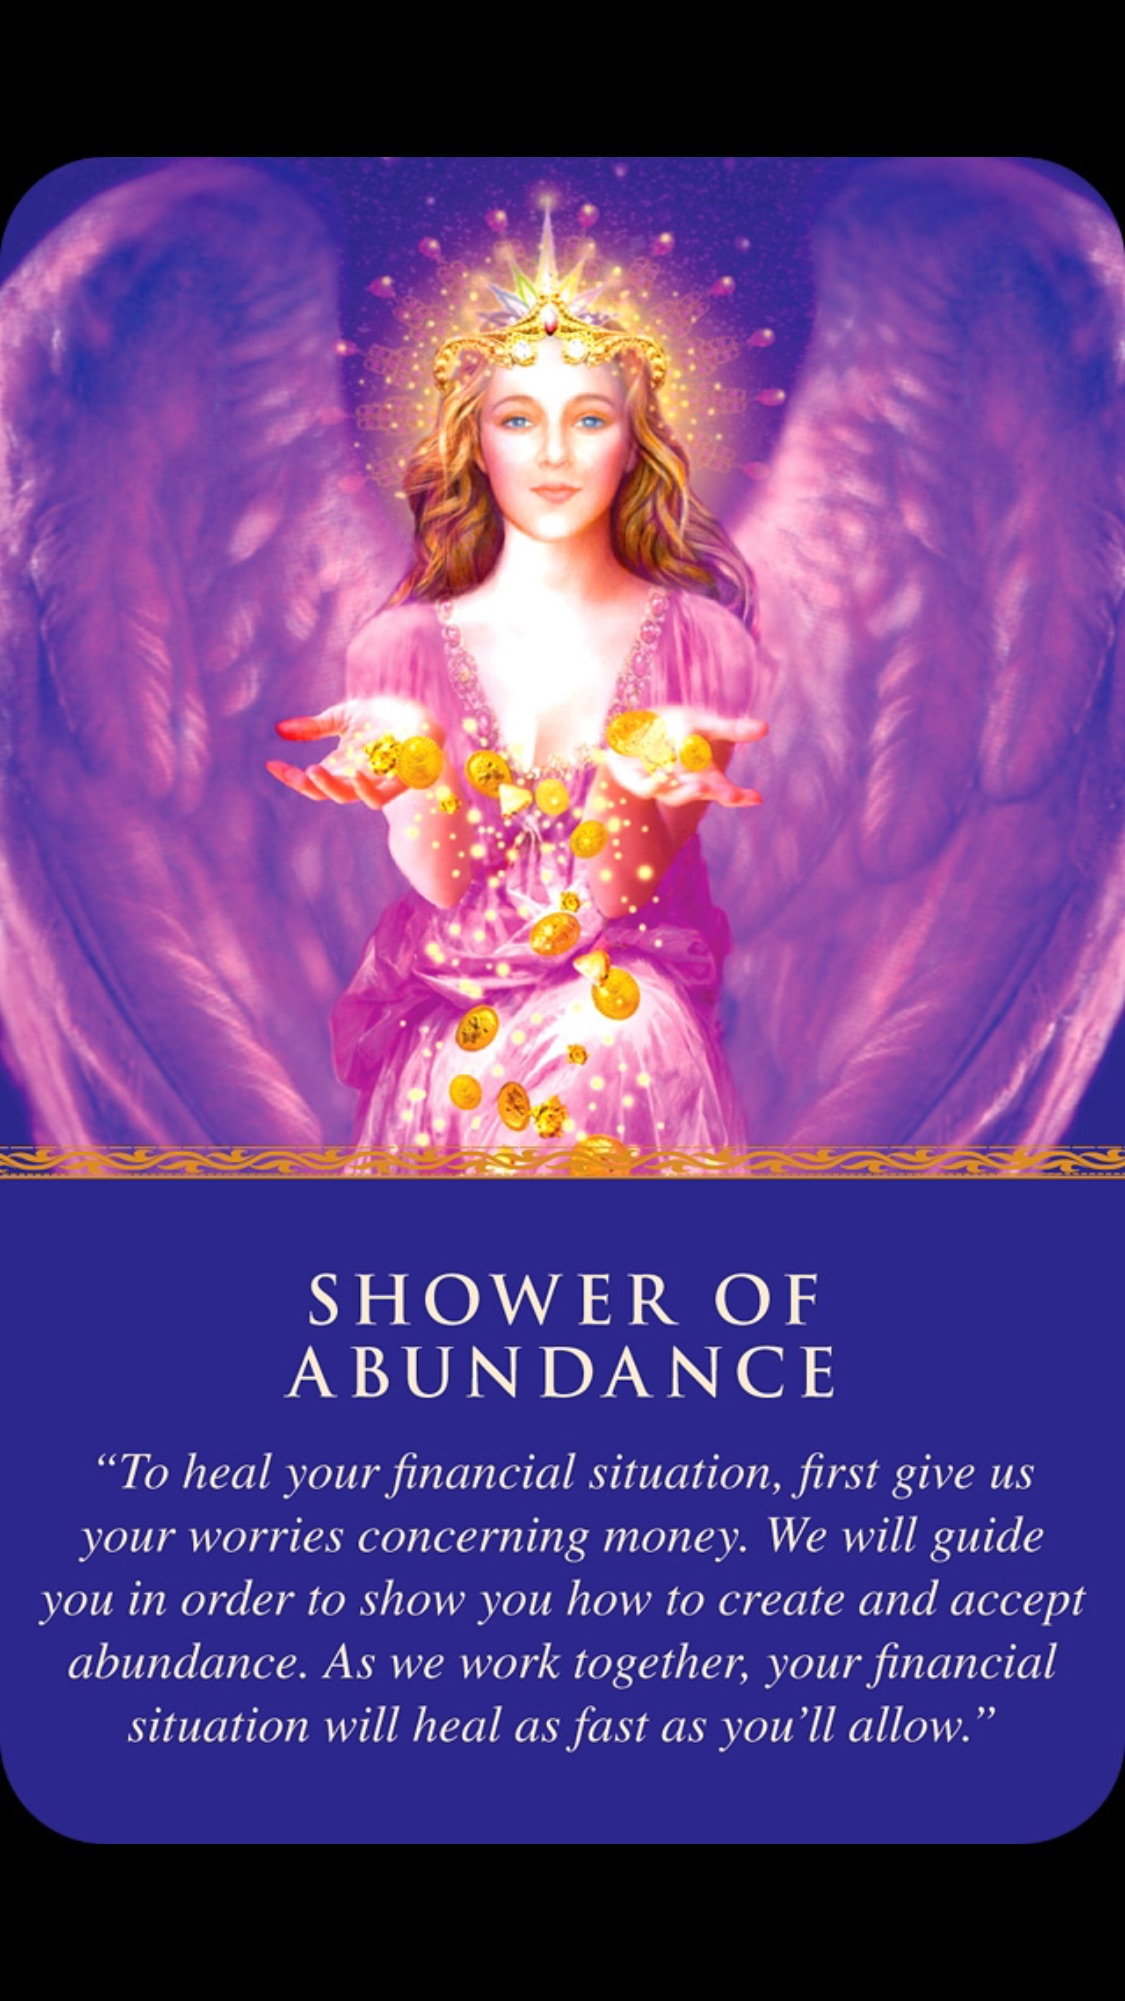 Deck used: Daily Guidance from Your Angels